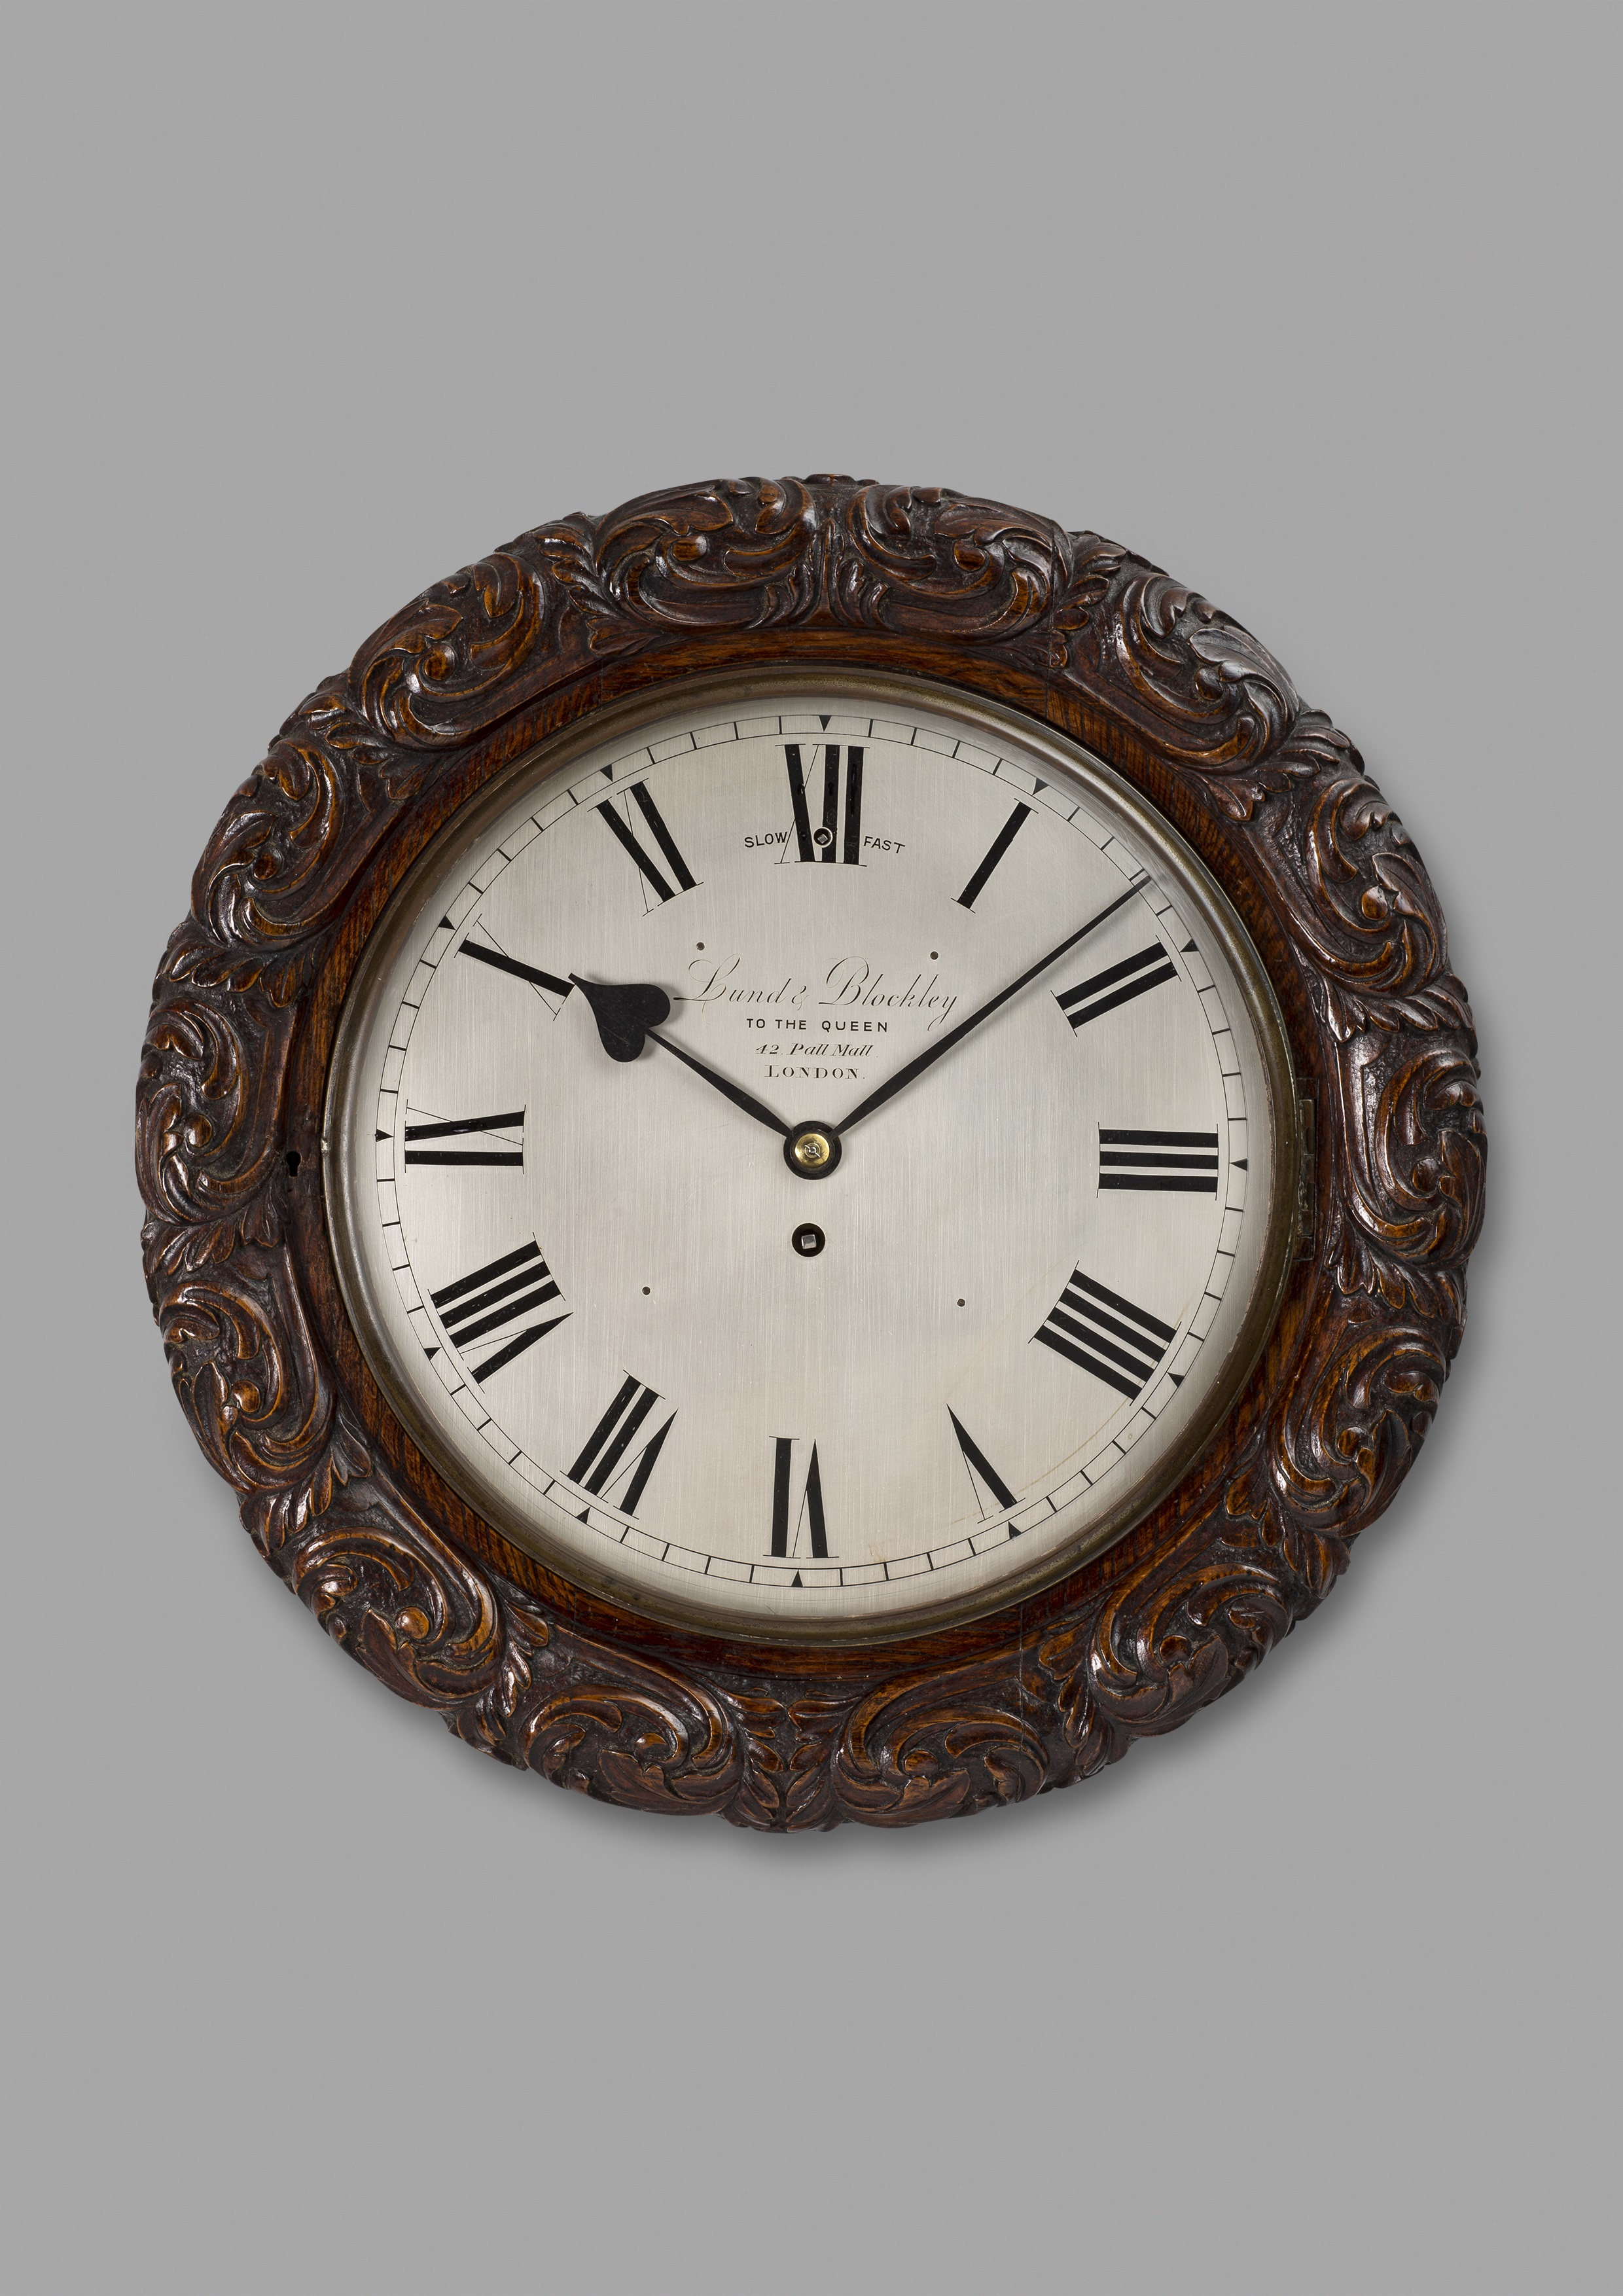 Carved oak wall clock by Lund & Blockley, London. Circa 1875. Raffety Ltd.